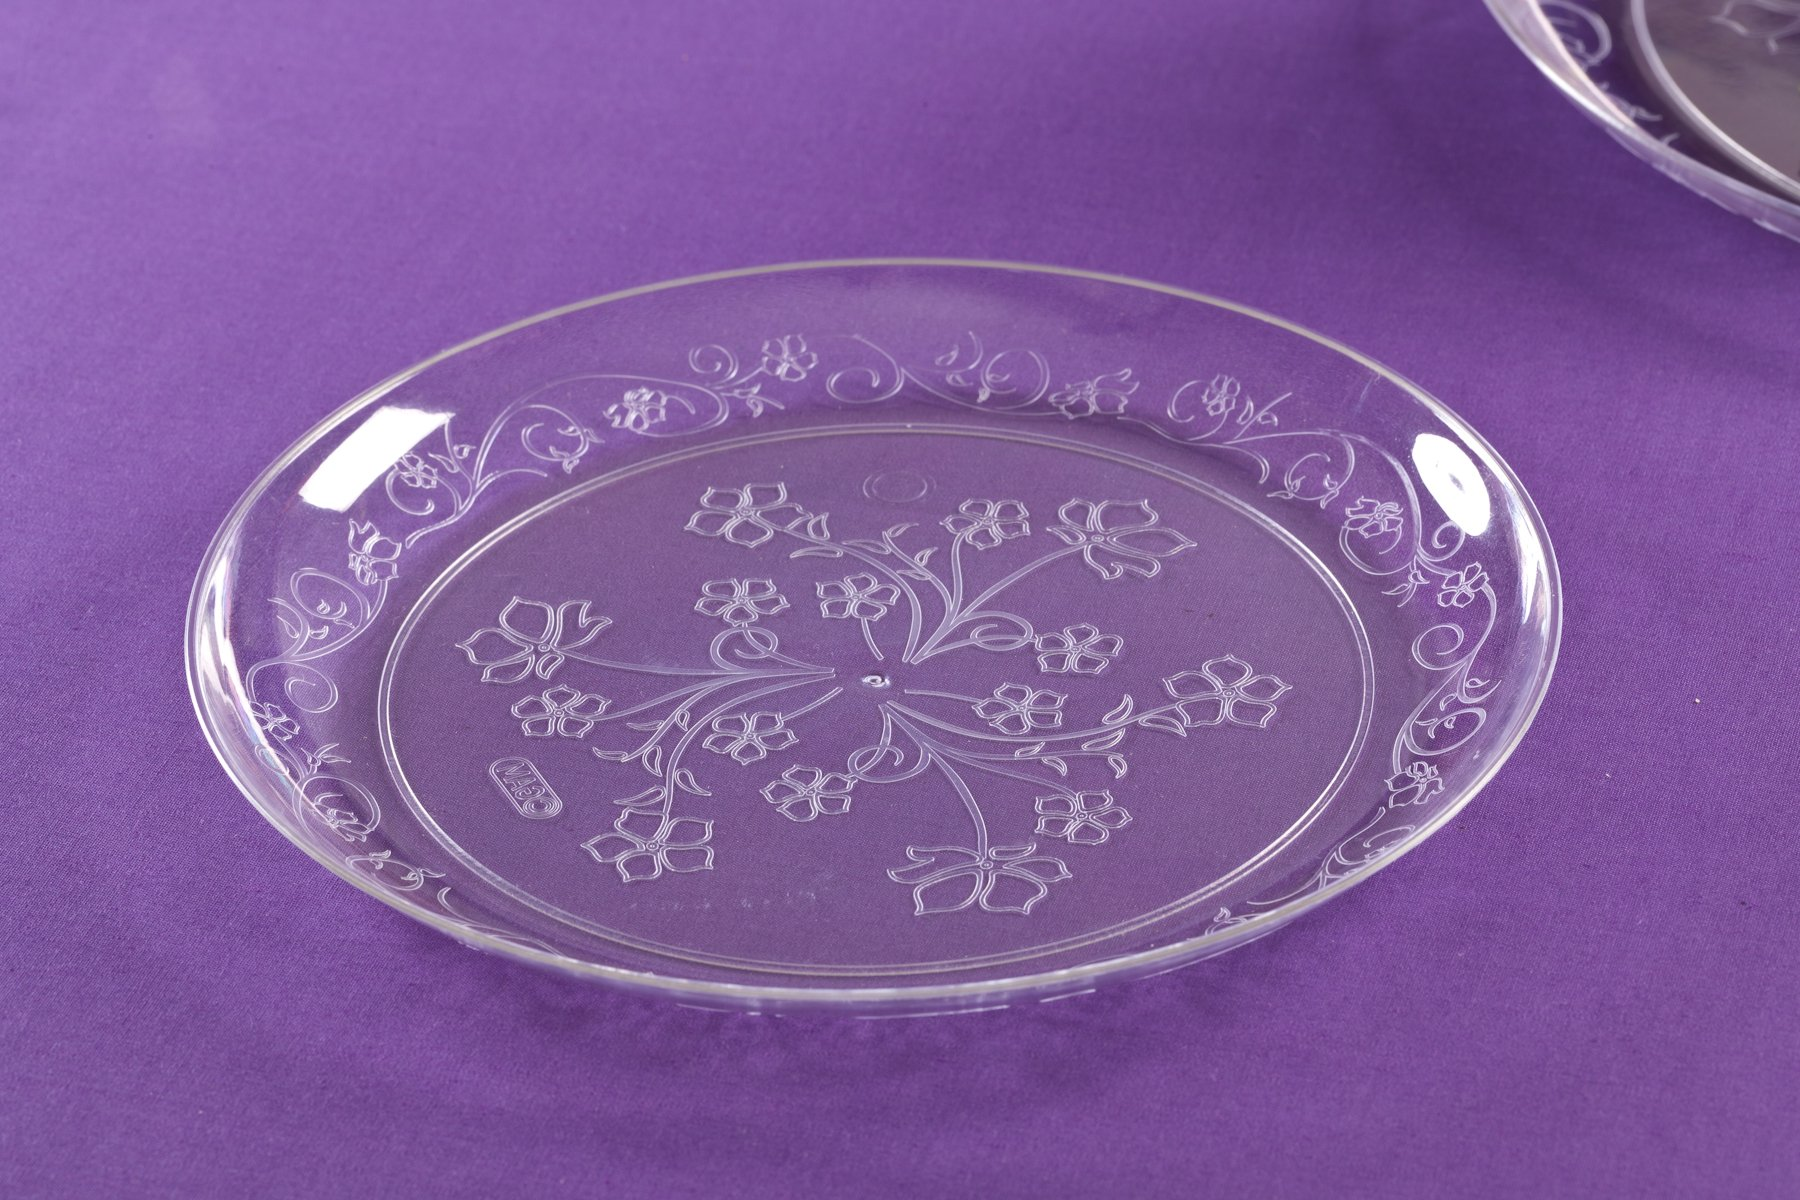 Premium Quality Heavyweight Plastic Plates China Like. Wedding and Party Dinnerware Plastic Plates 20 count, 7 inch, Clear